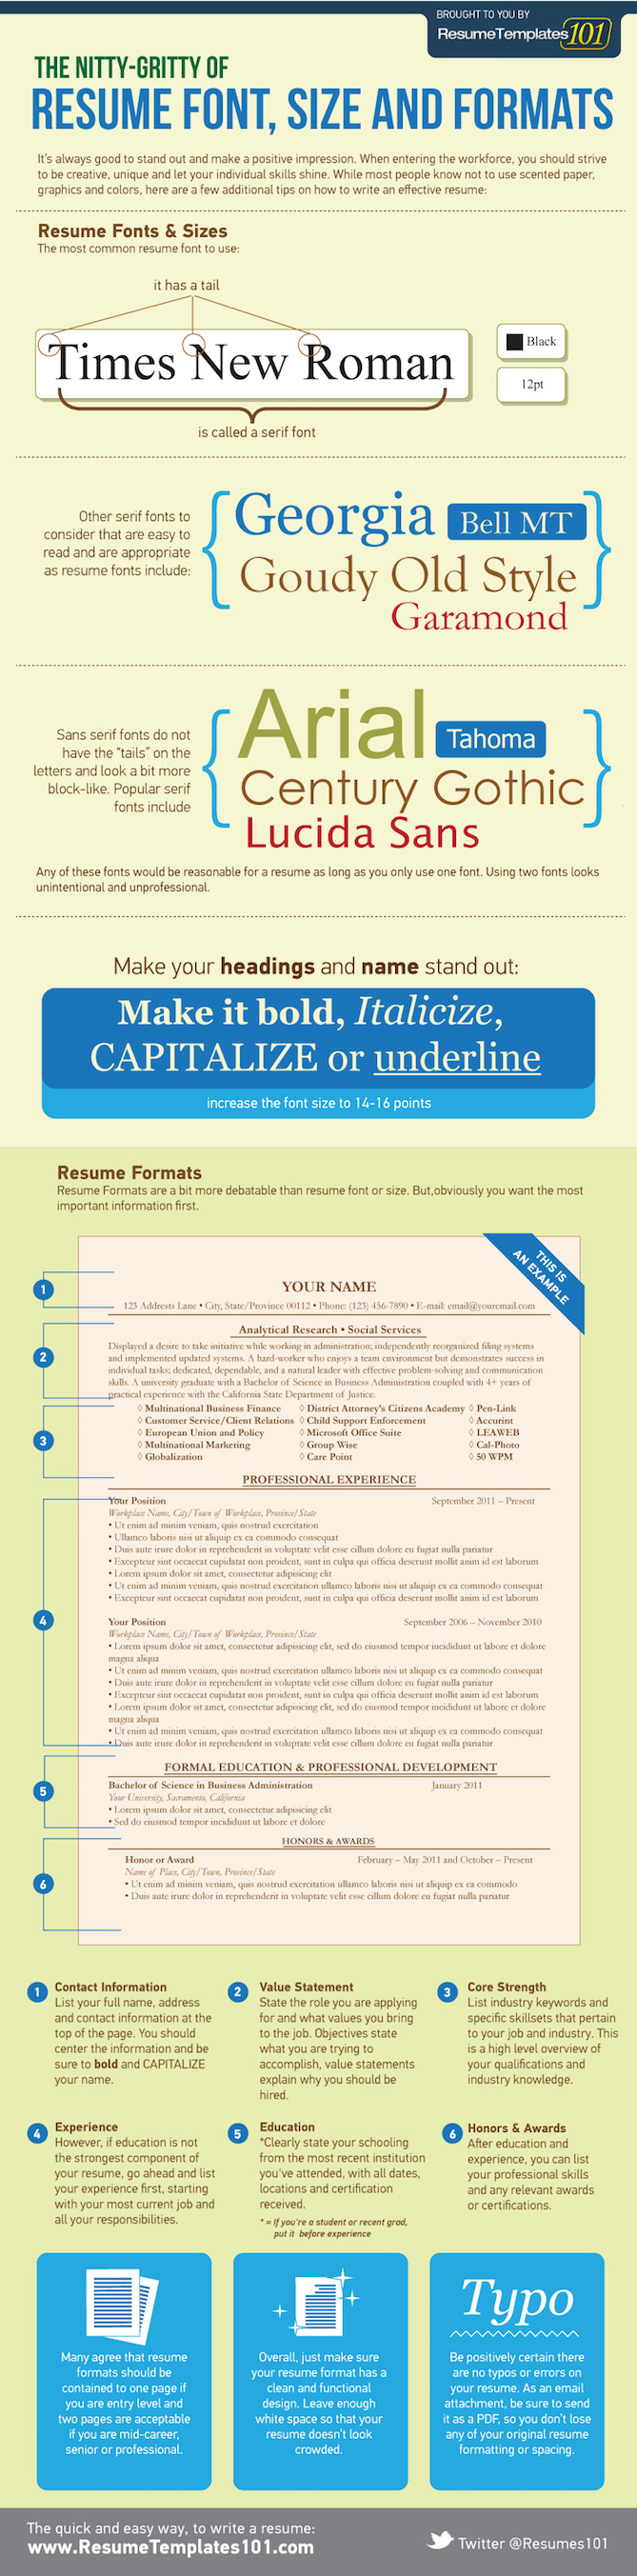 Resume Format Tips You Need To Know In 2018 Sample Formats Included - Esume Formats